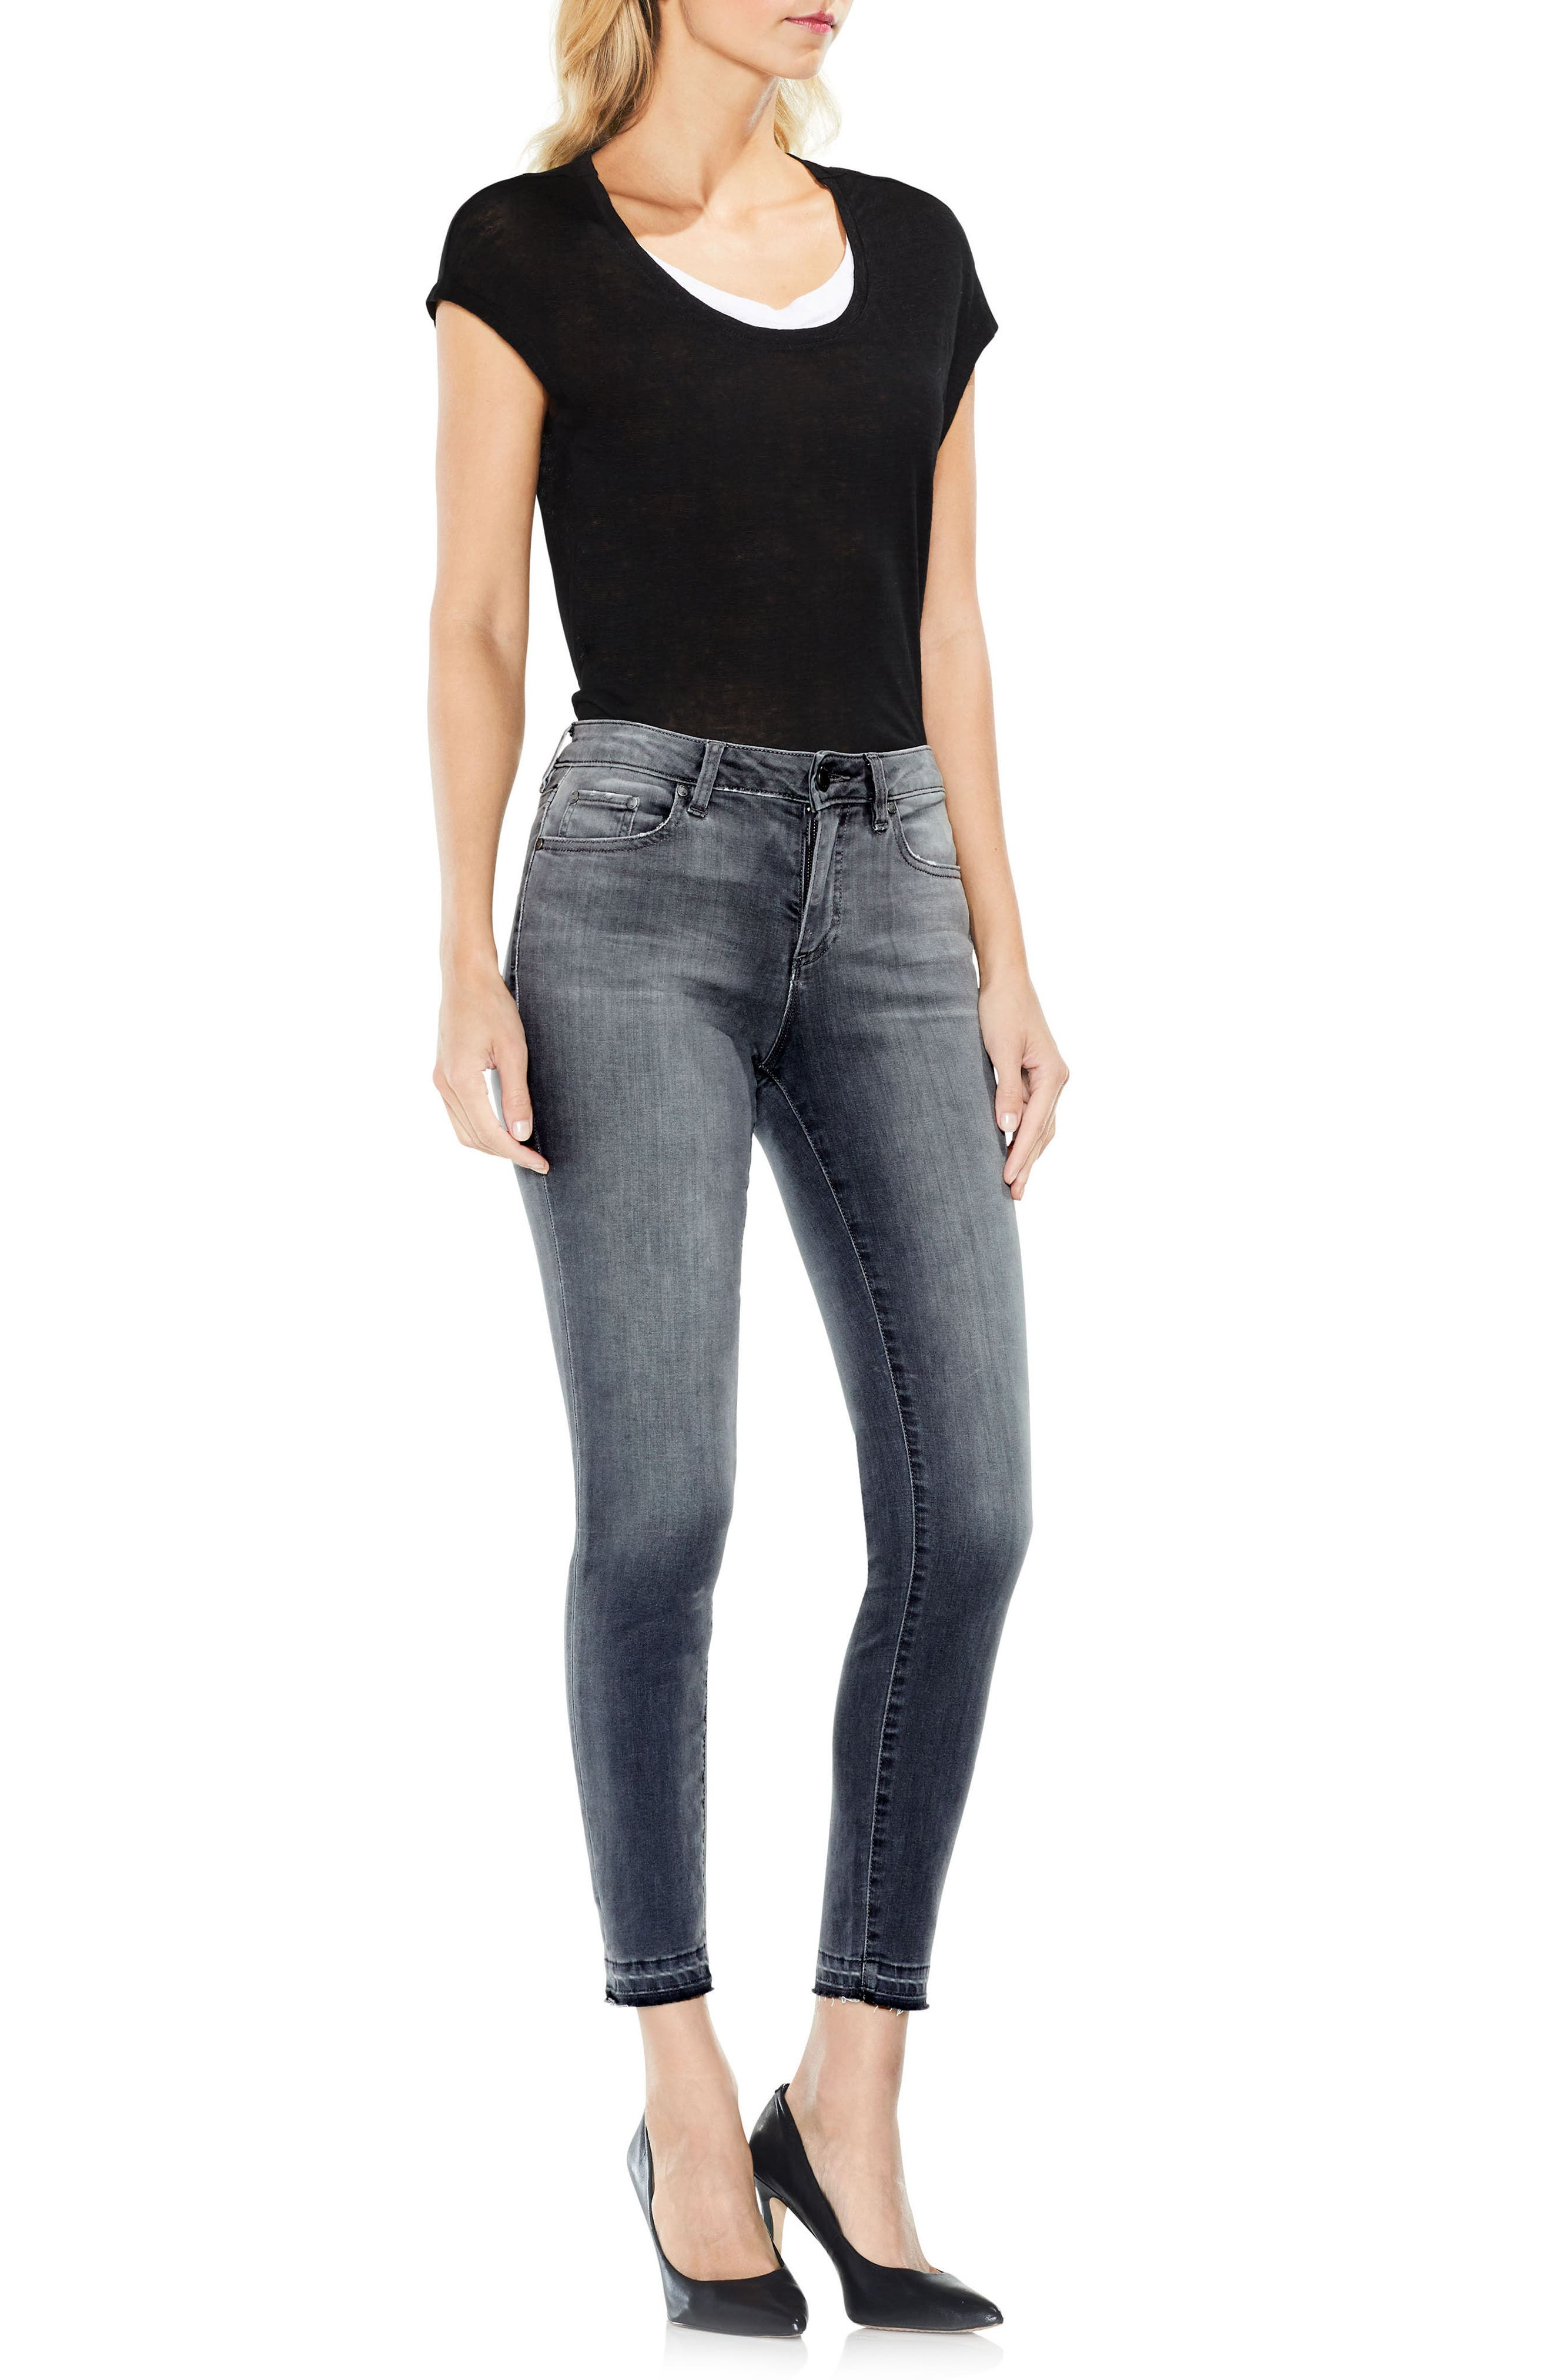 Two by Vince Camuto Grey Released Hem Jeans,                             Alternate thumbnail 3, color,                             COBBLESTONE